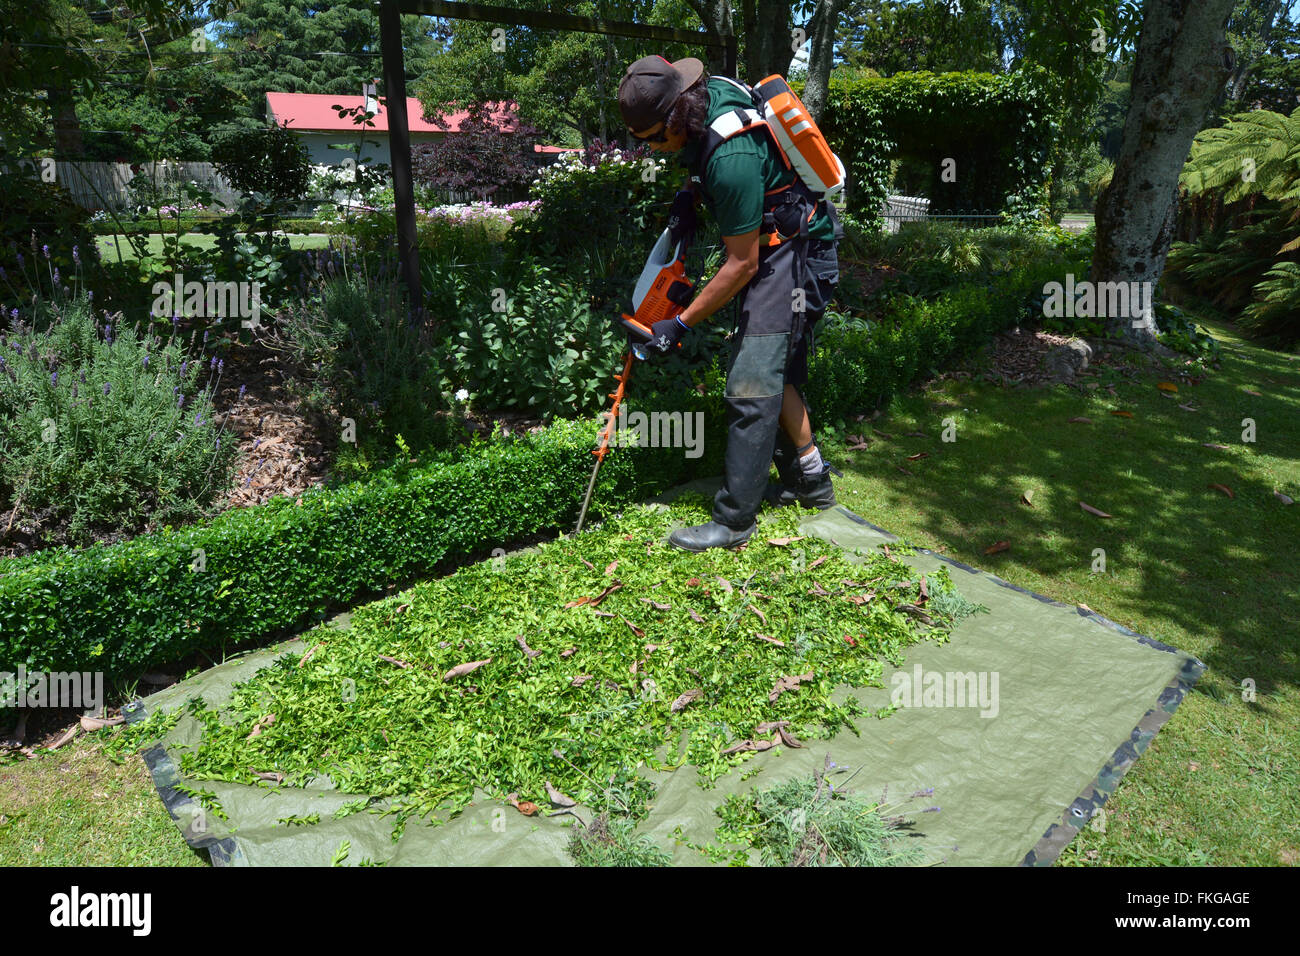 HAMILTON, NZL - JAN 15 2016: Gardener trimming plants in a garden with a trimmer.Forest gardening, a forest-based - Stock Image